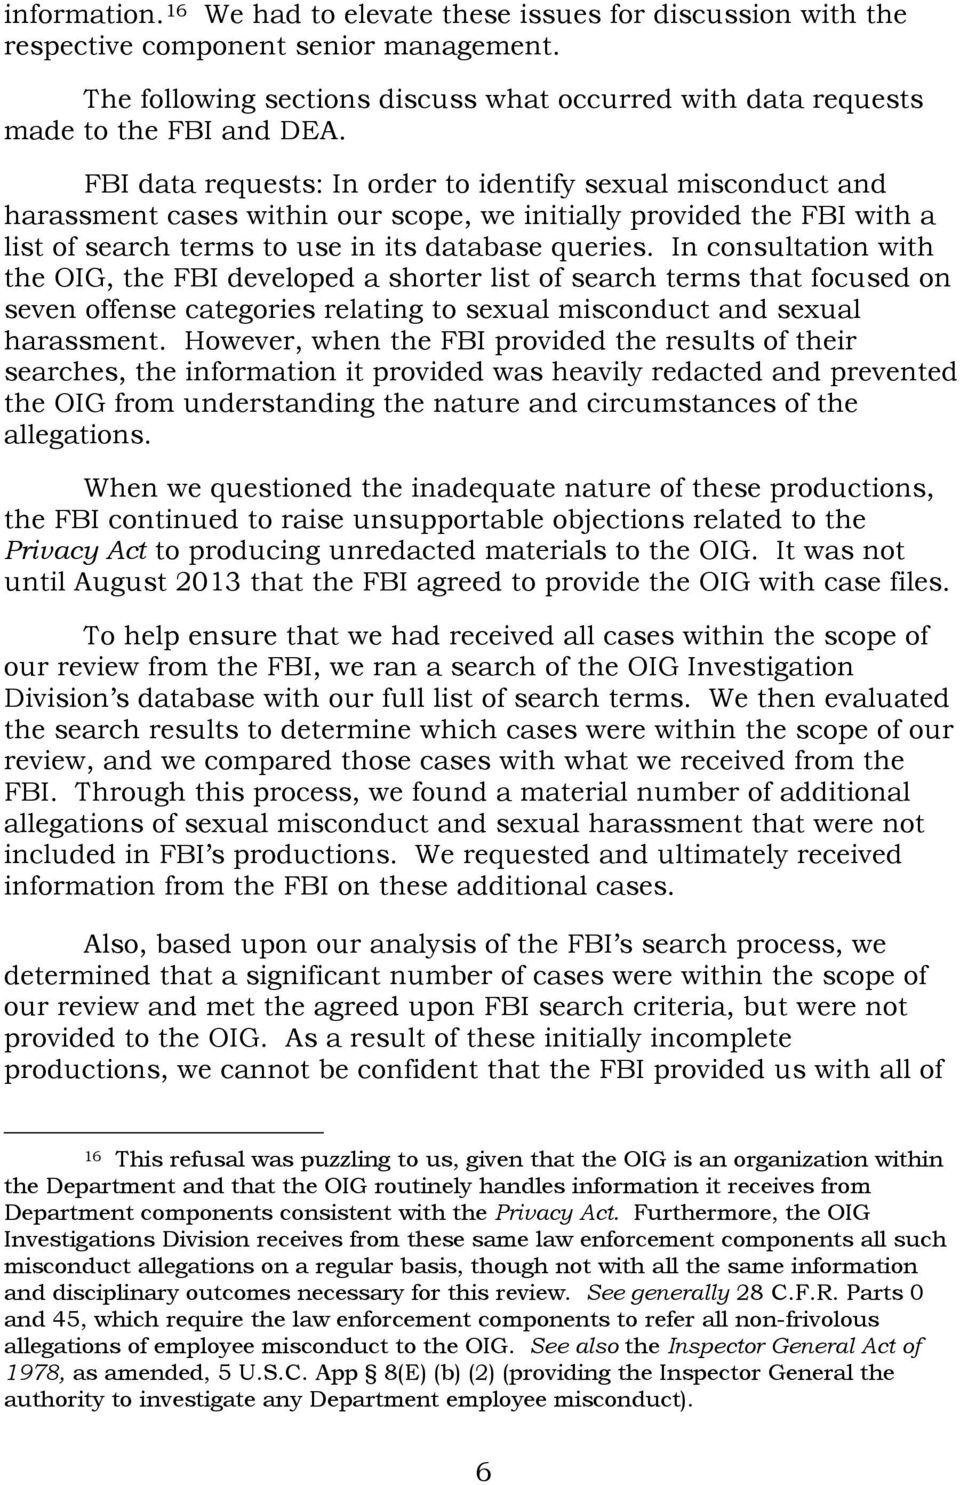 In consultation with the OIG, the FBI developed a shorter list of search terms that focused on seven offense categories relating to sexual misconduct and sexual harassment.